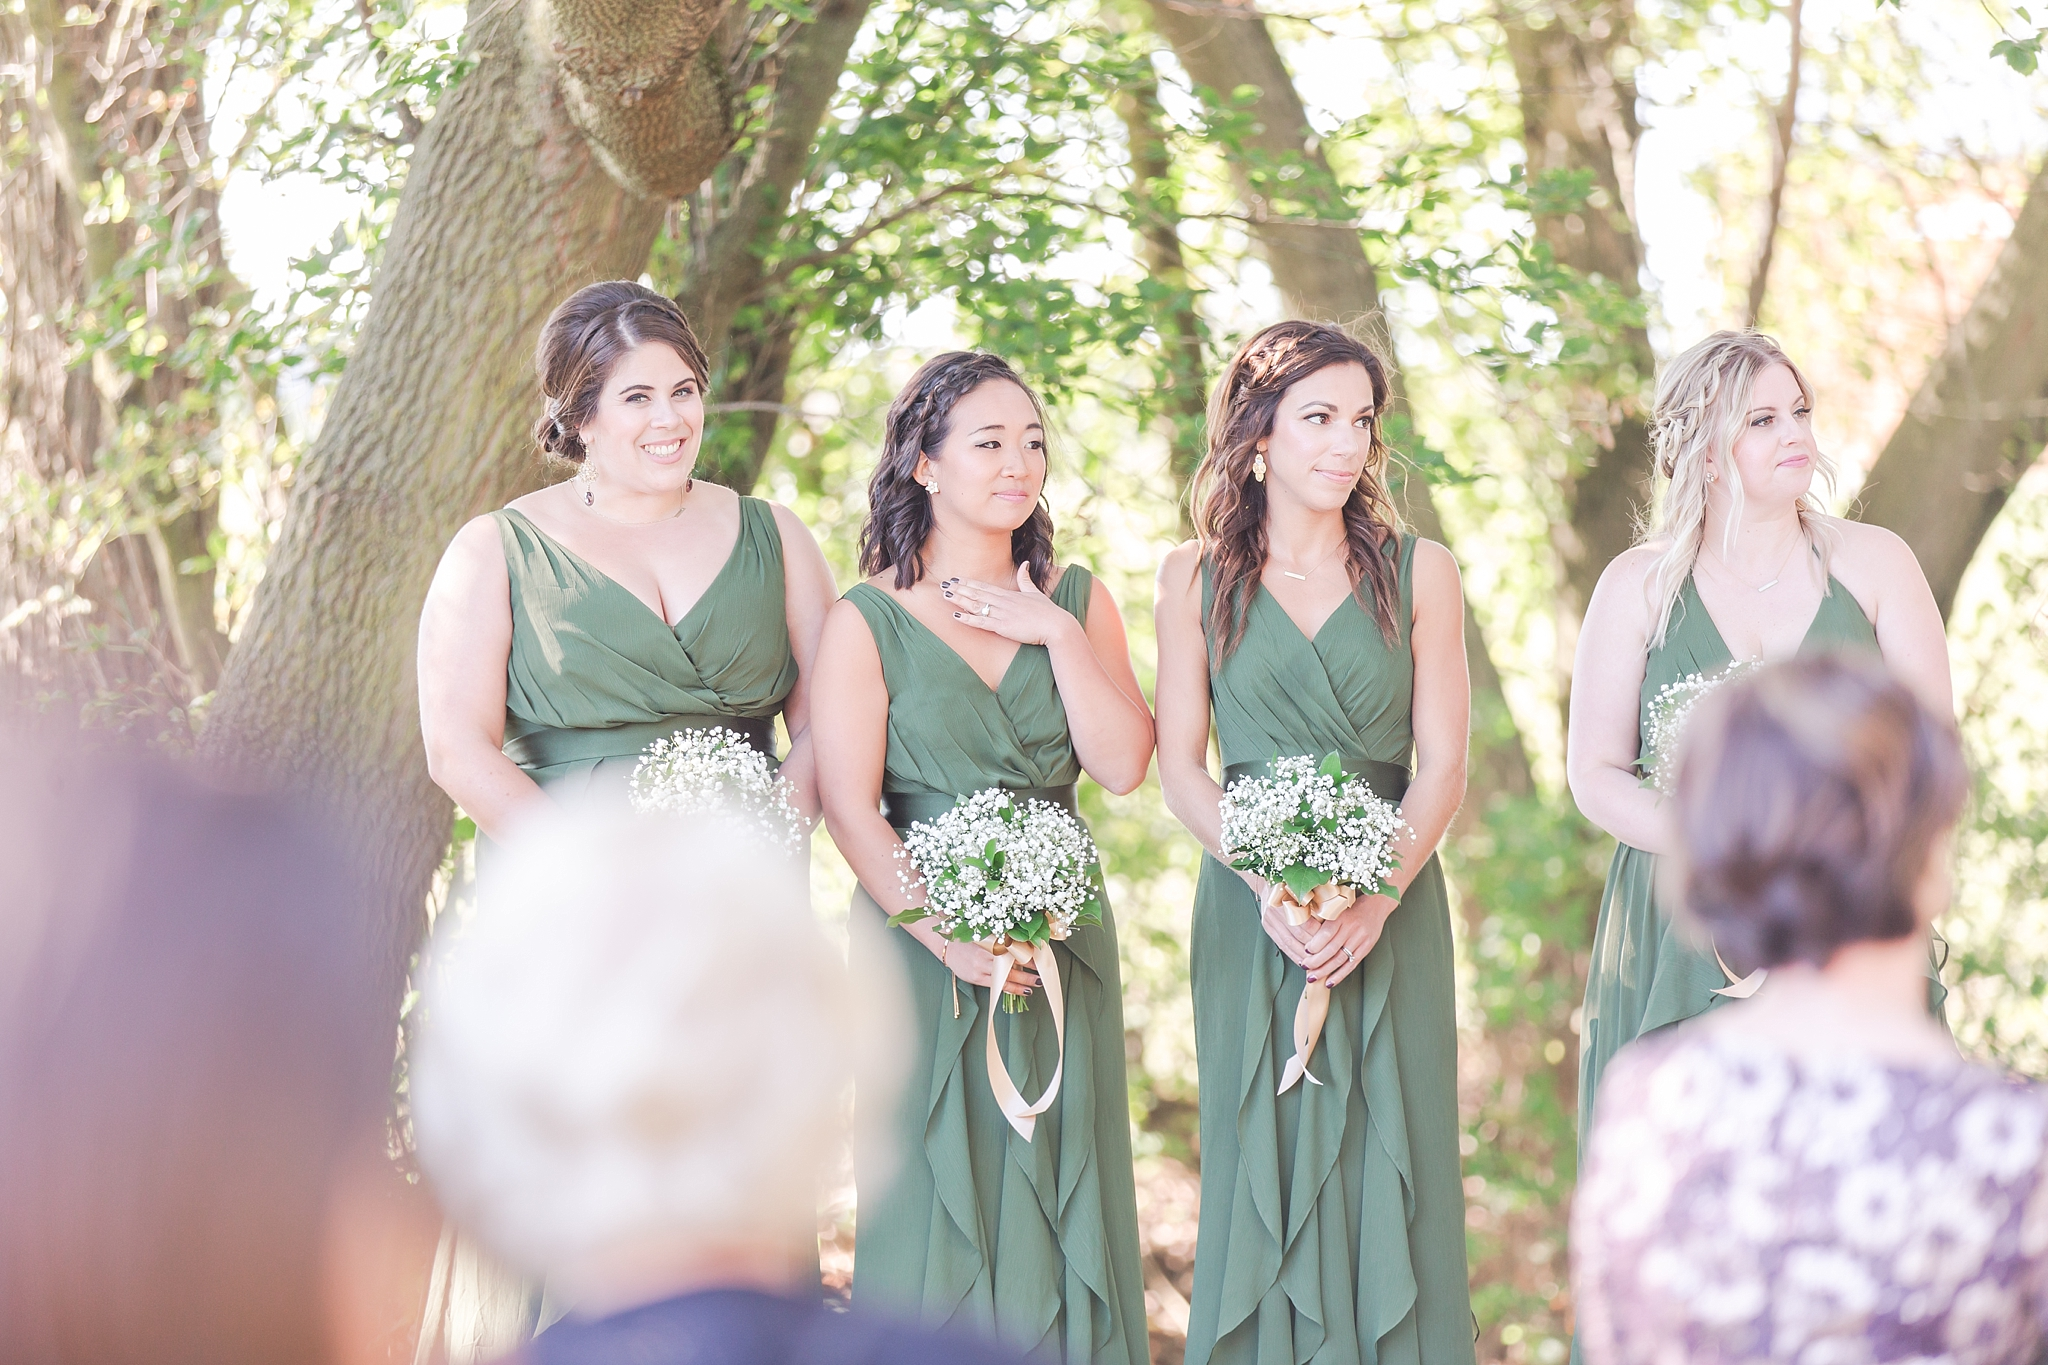 natural-rustic-wedding-photos-at-frutig-farms-the-valley-in-ann-arbor-michigan-by-courtney-carolyn-photography_0069.jpg